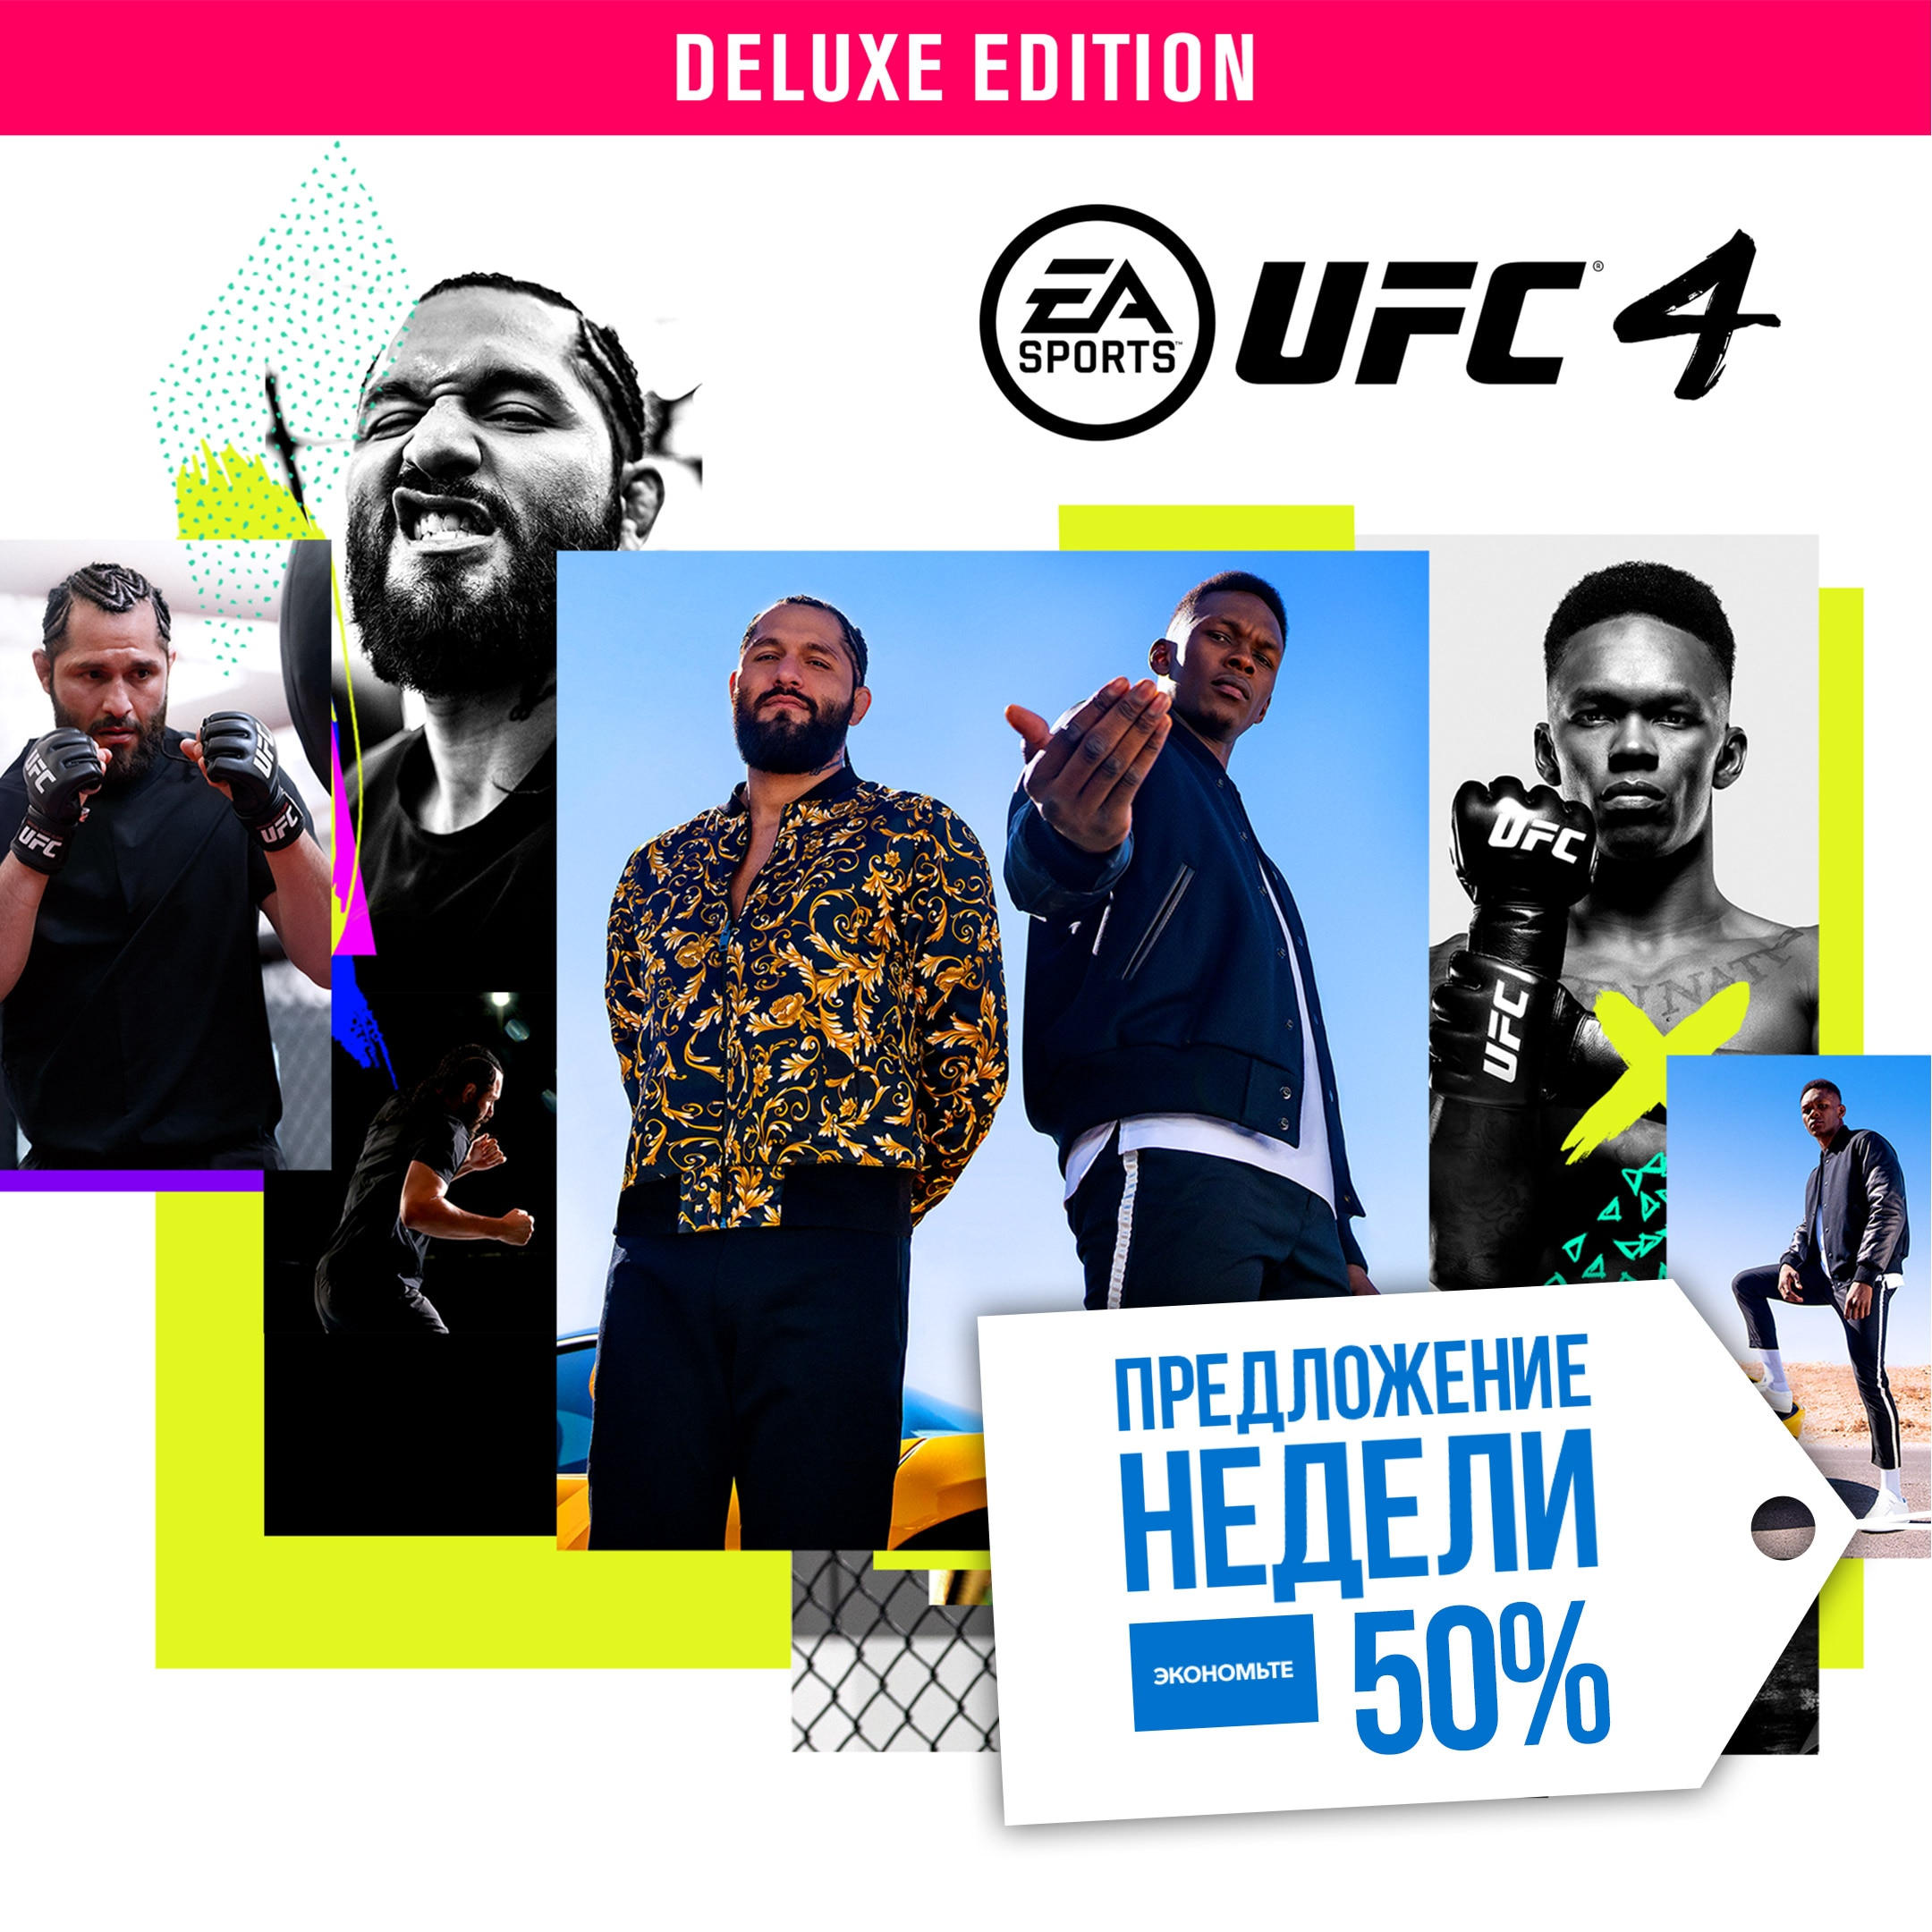 [PROMO] Deal Of The Week - UFC4